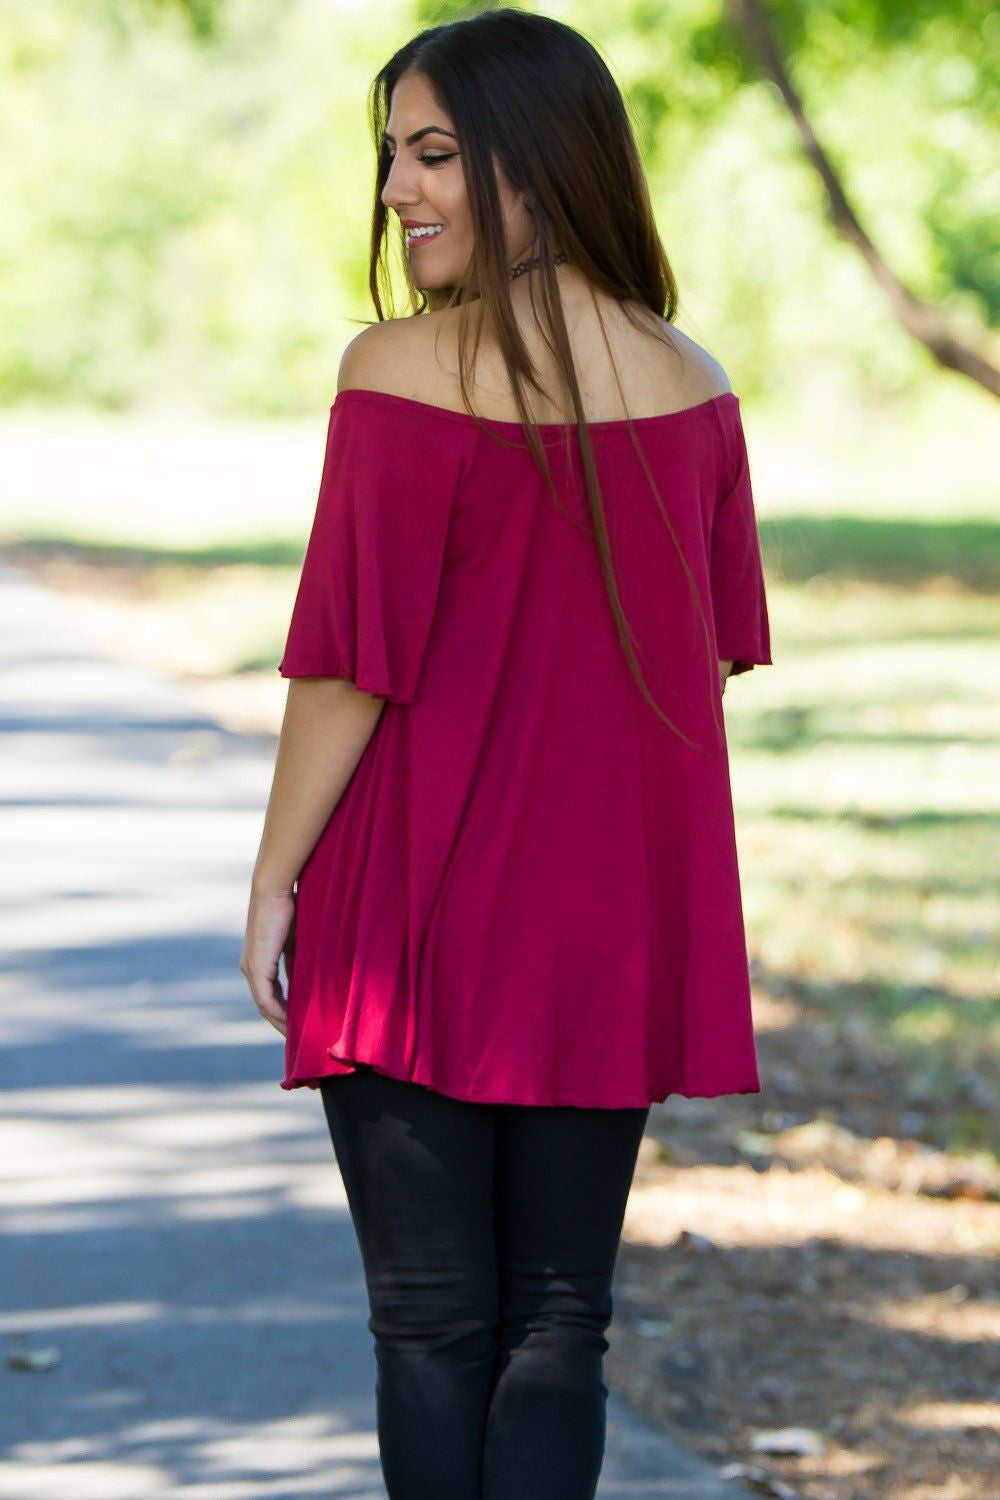 Off The Shoulder Short Sleeve Piko Top - Wine - Piko Clothing